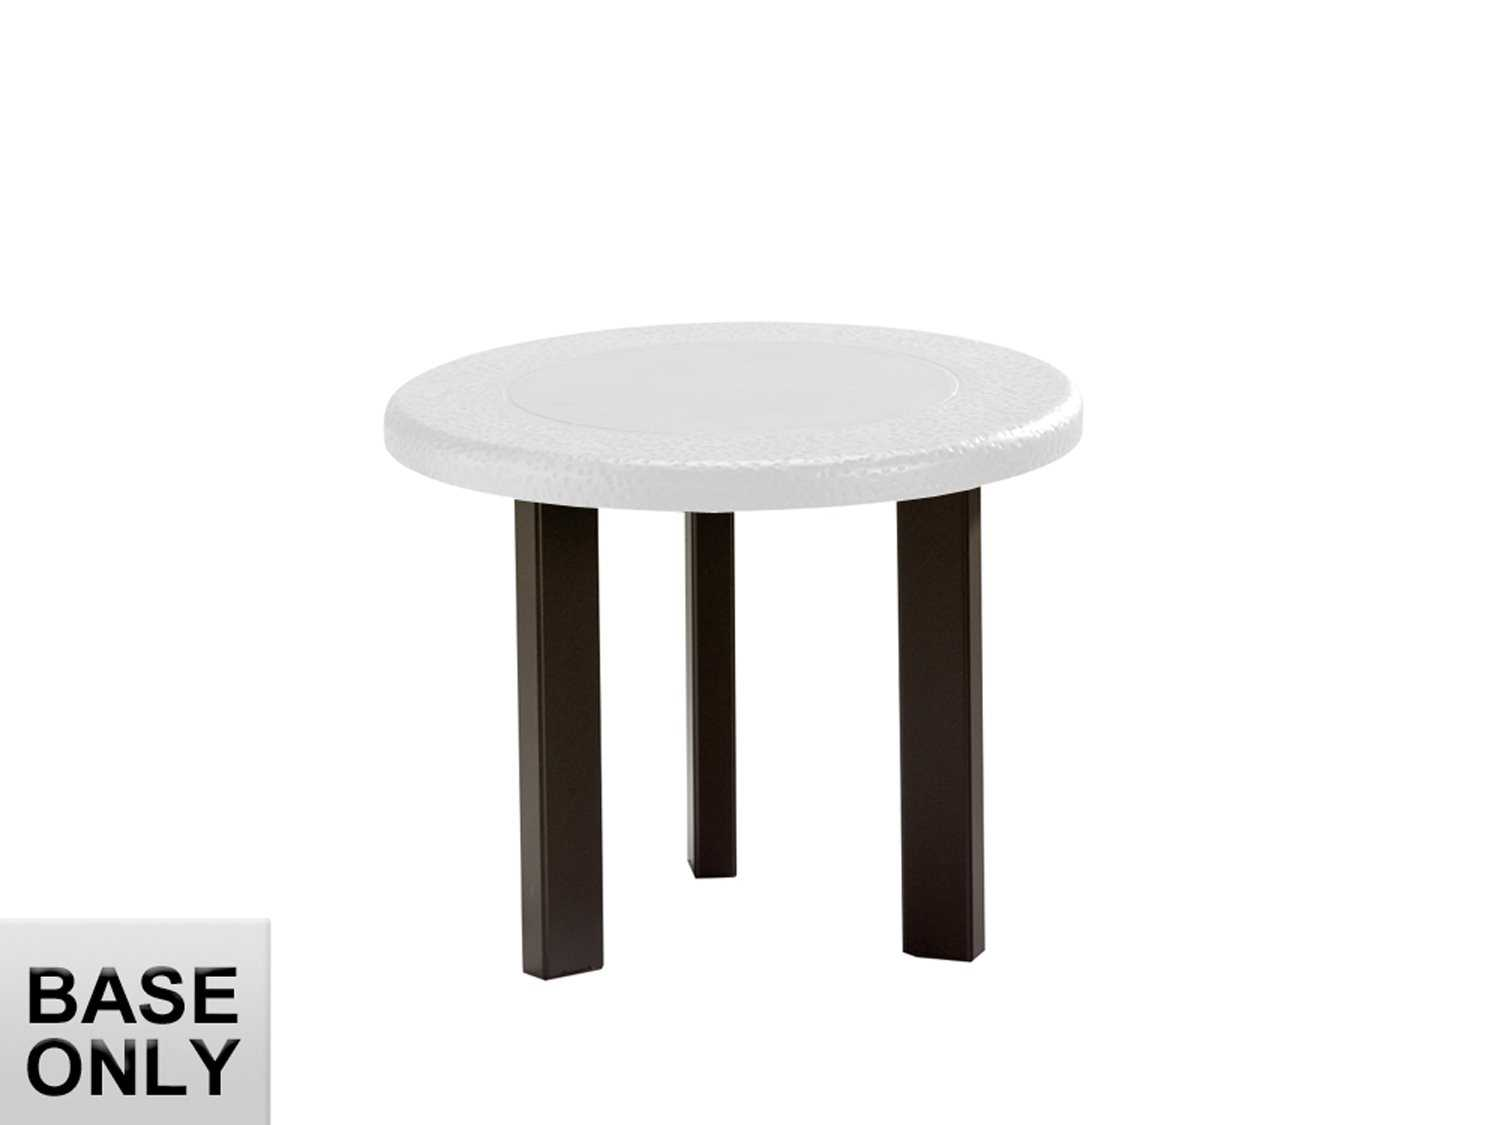 Tropitone bases cast aluminum round coffee table base only 18h tp730582swb Bases for coffee tables